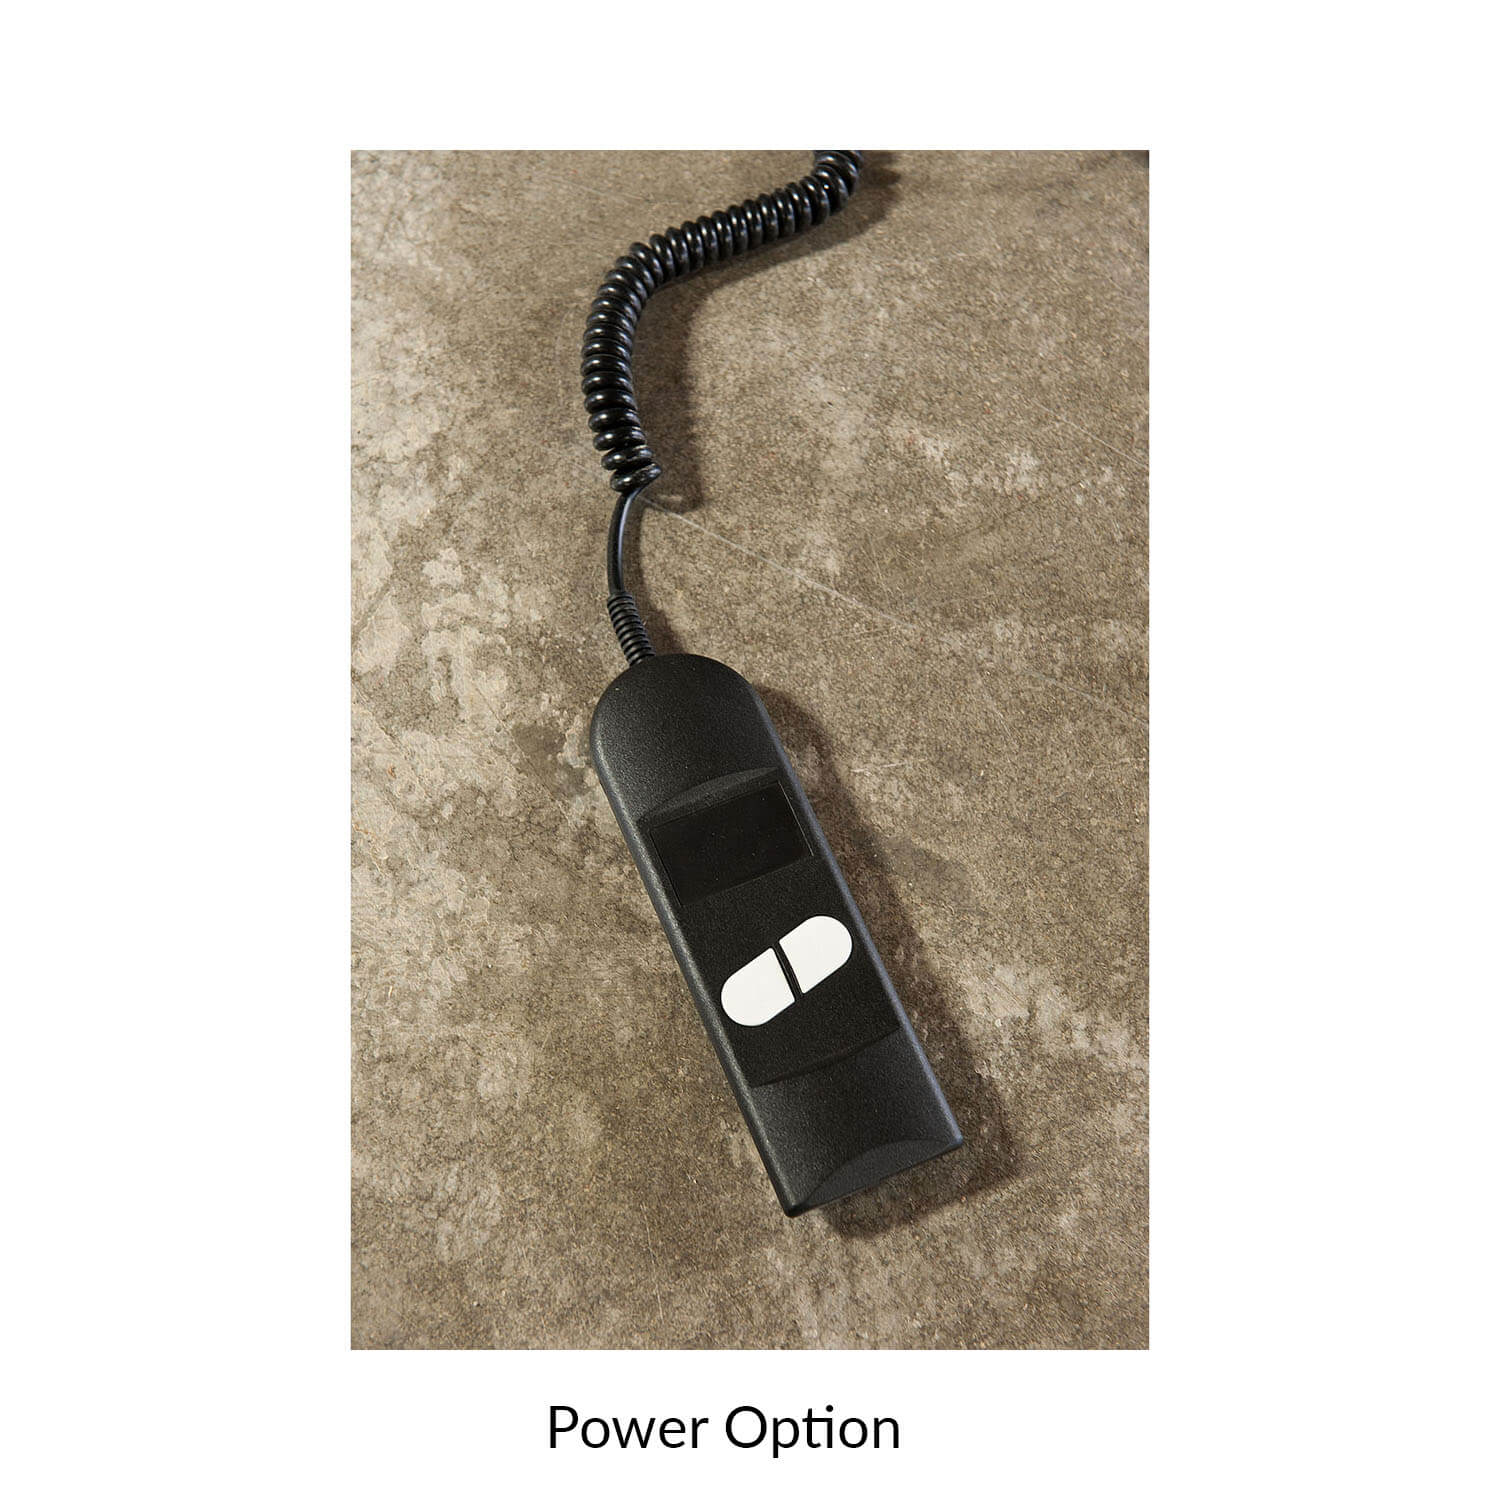 power-option.jpg